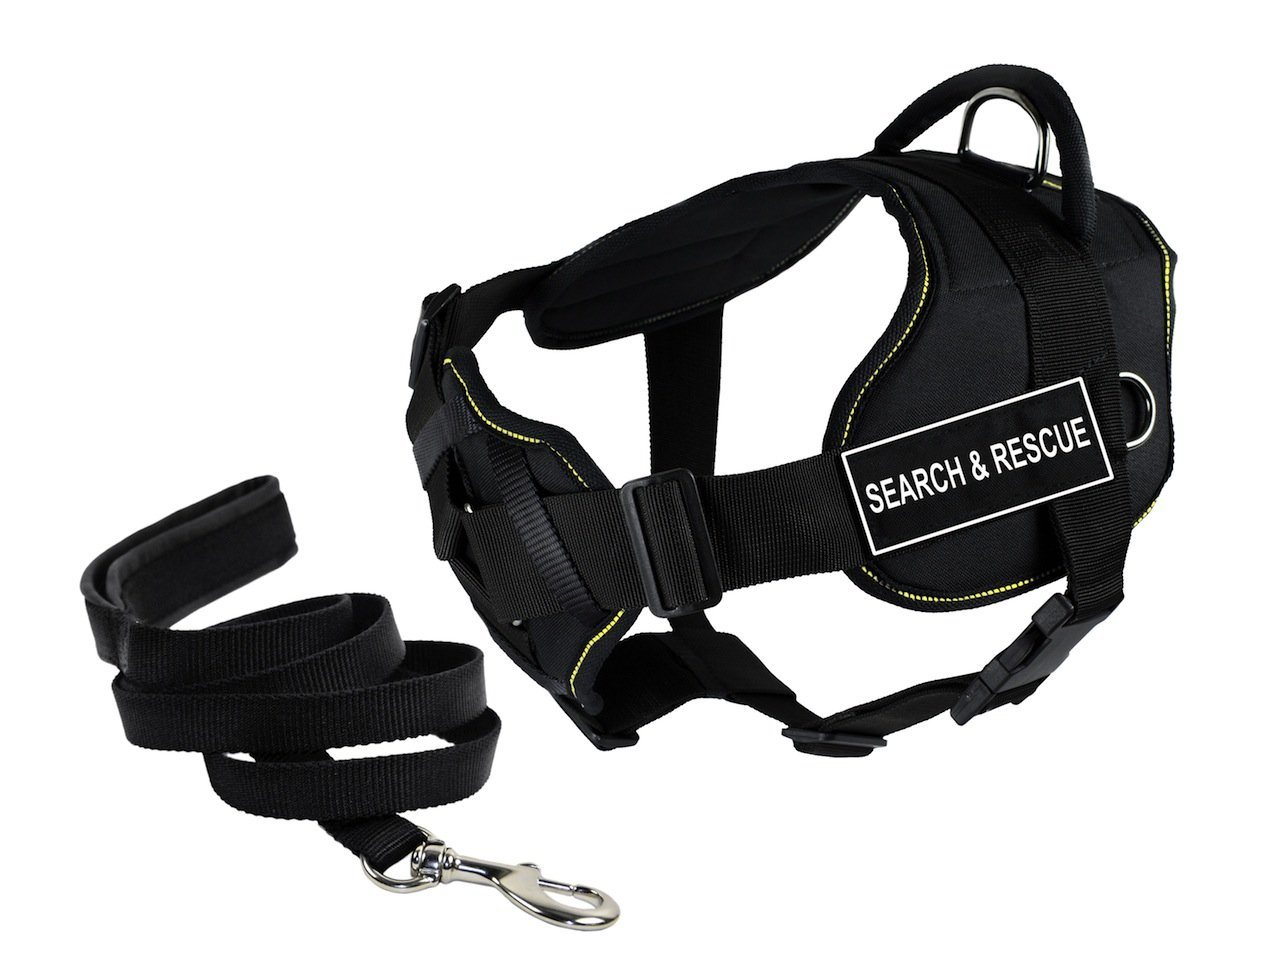 Dean & Tyler's DT Fun Chest Support SEARCH & RESCUE Harness, Small, with 6 ft Padded Puppy Leash.